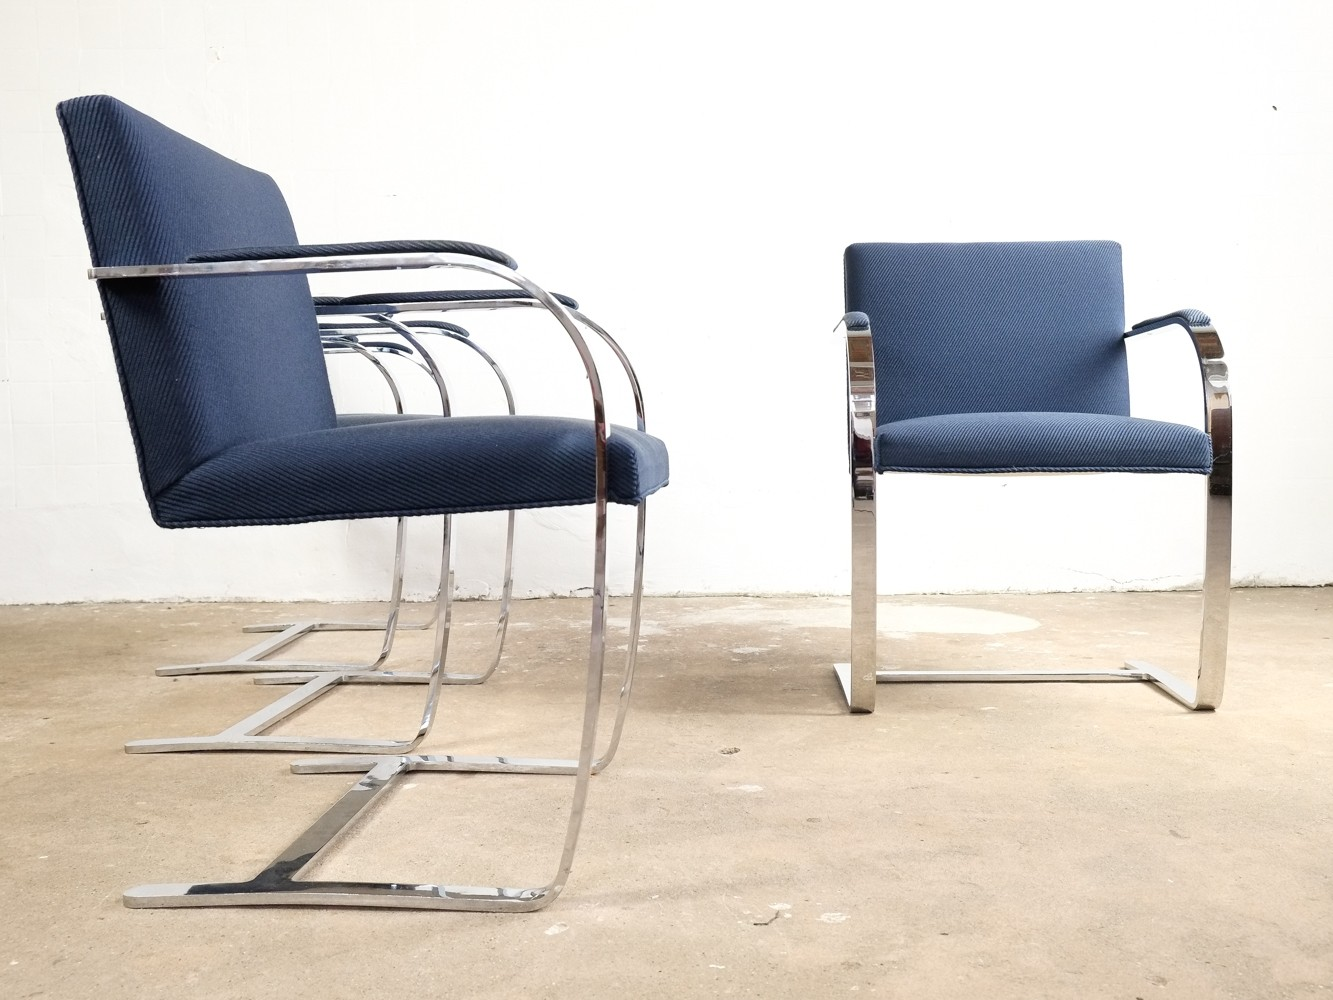 Set of 6 BRNO chairs by Ludwig Mies van der Rohe for Knoll International